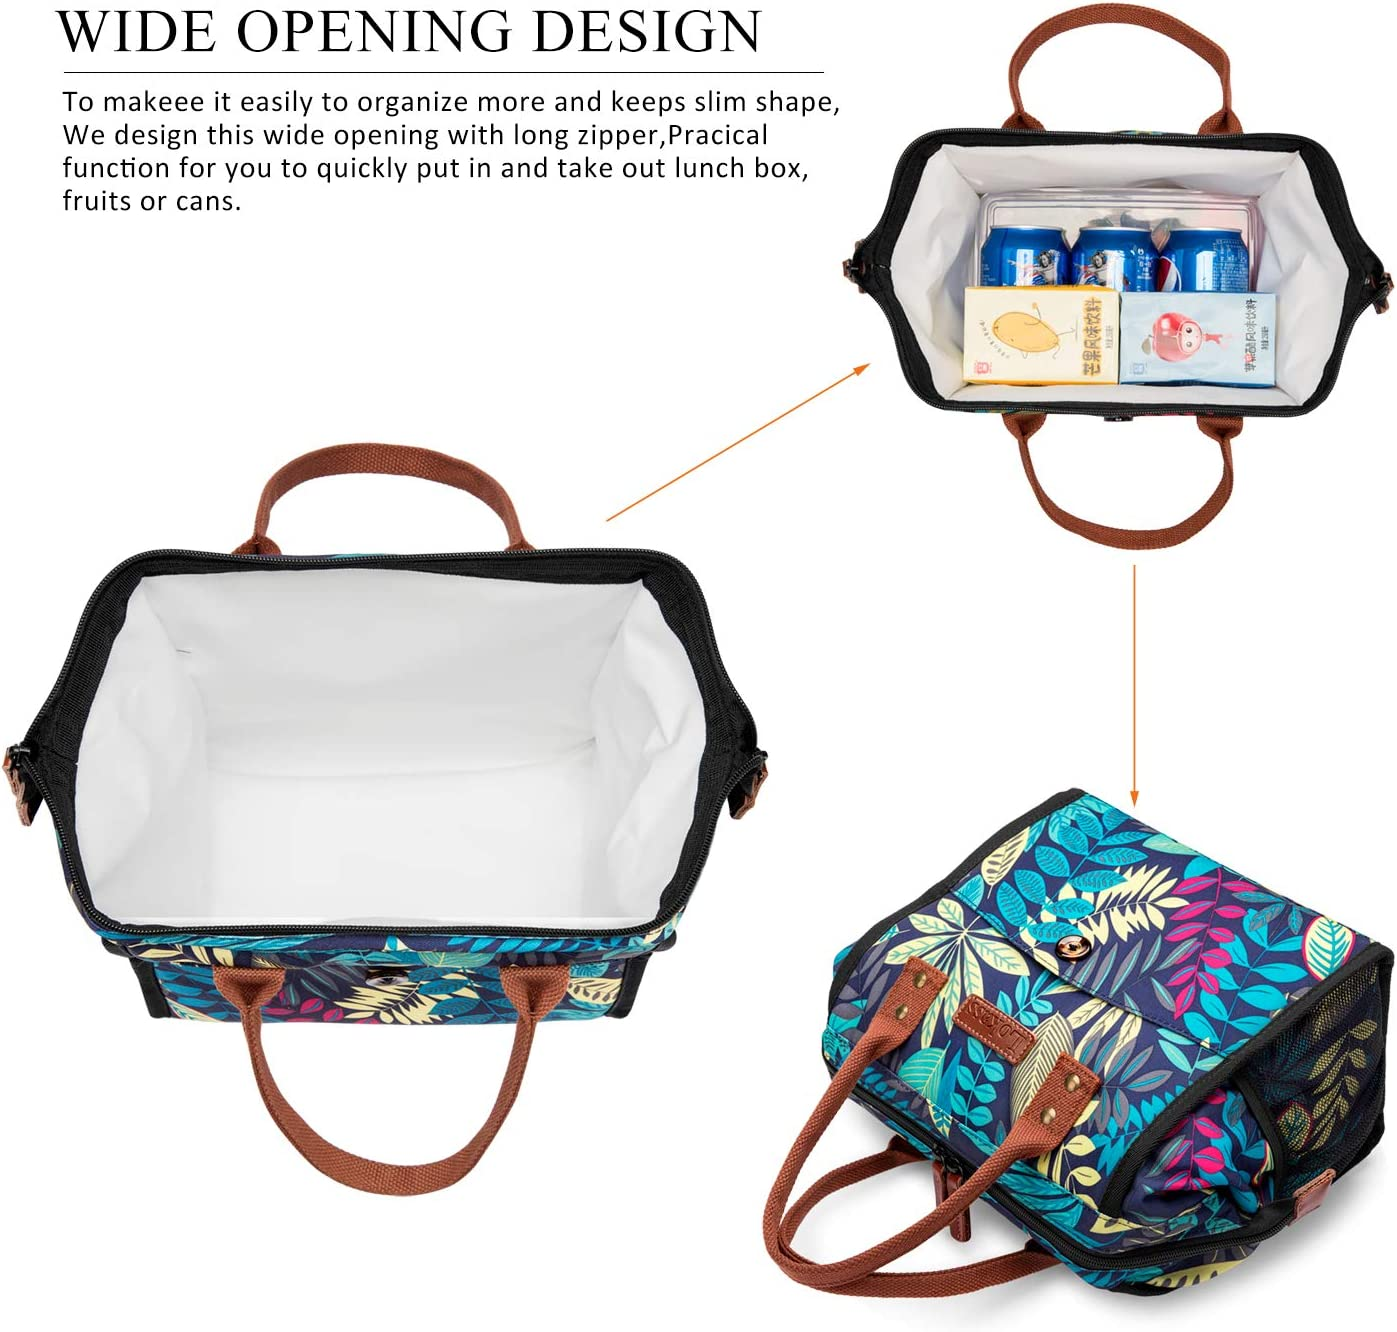 CoolBELL Lunch Bags For Women Lunch Tote Water-Resistant Cooler Bag Soft Leak Proof Lunch Box Insulated Lunch Holder With Wide Opening for Men//Women//Girl//Office Black